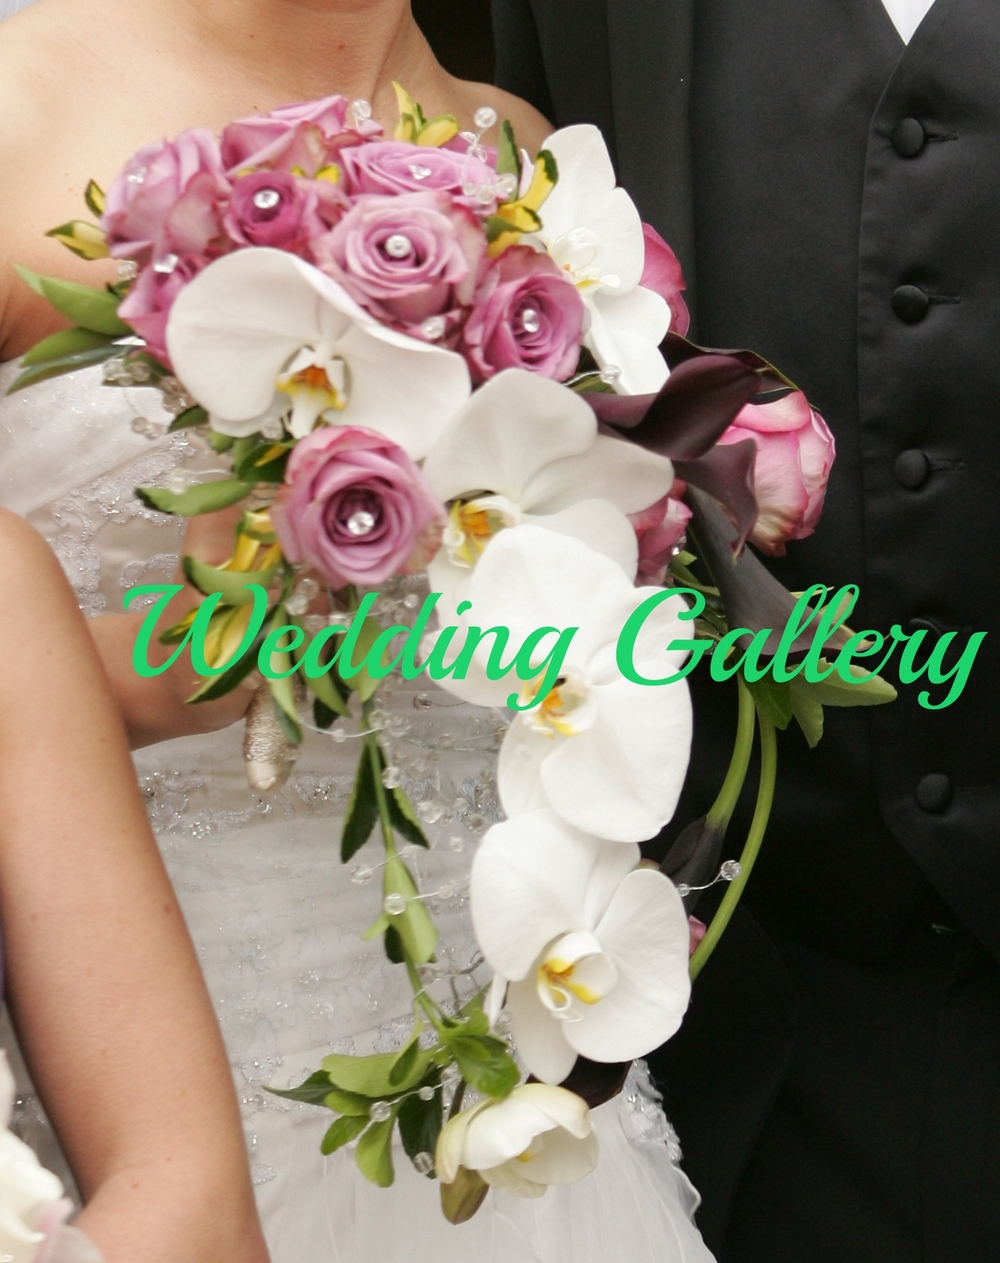 Wedding Gallery Main.jpg